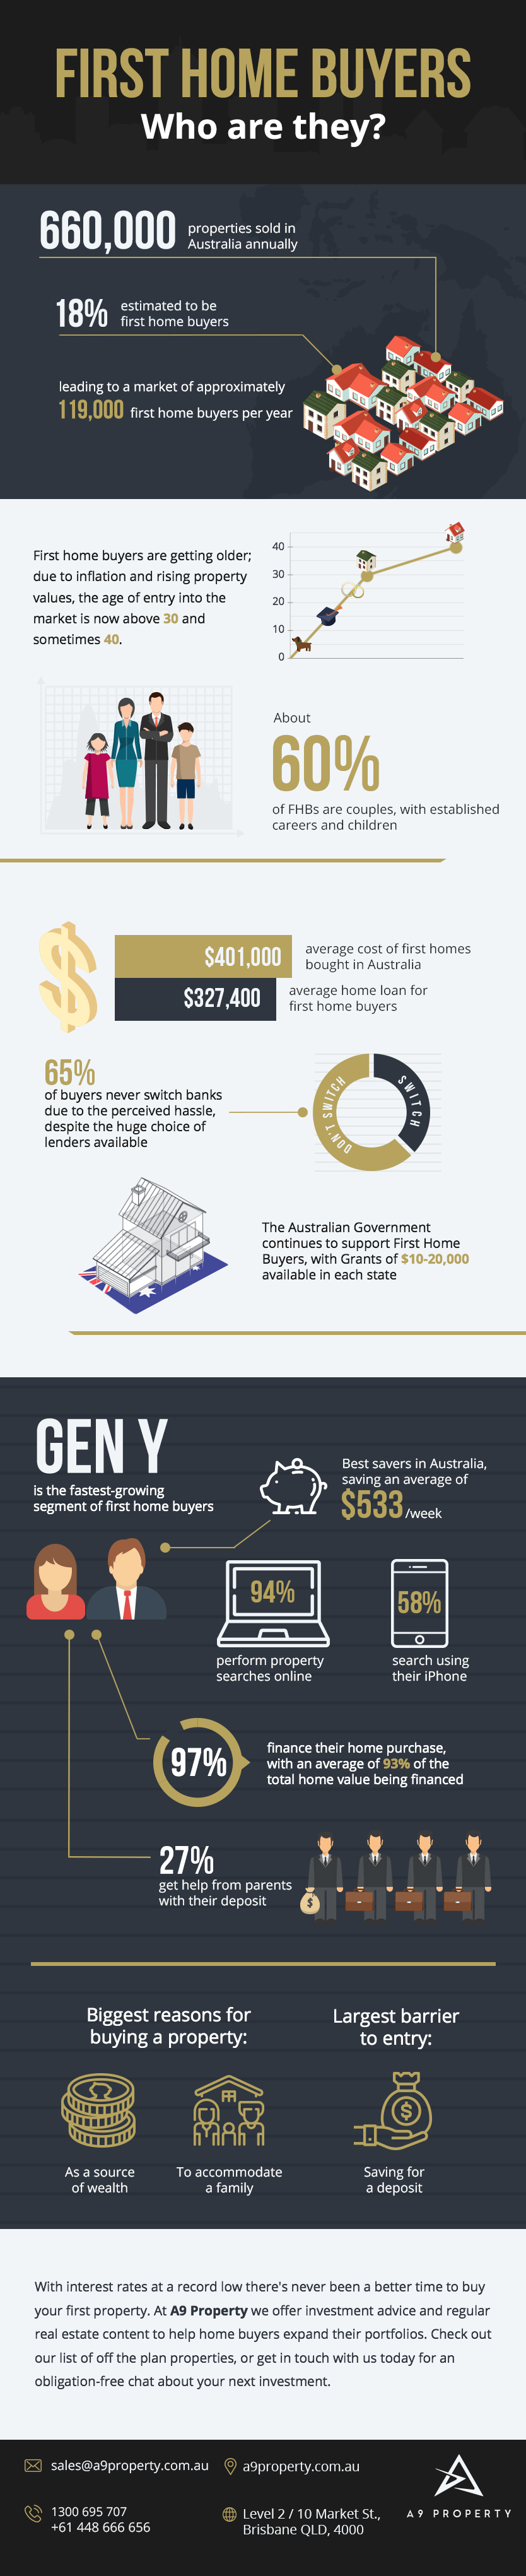 First Home Buyers Infographic | A9 Property, Brisbane